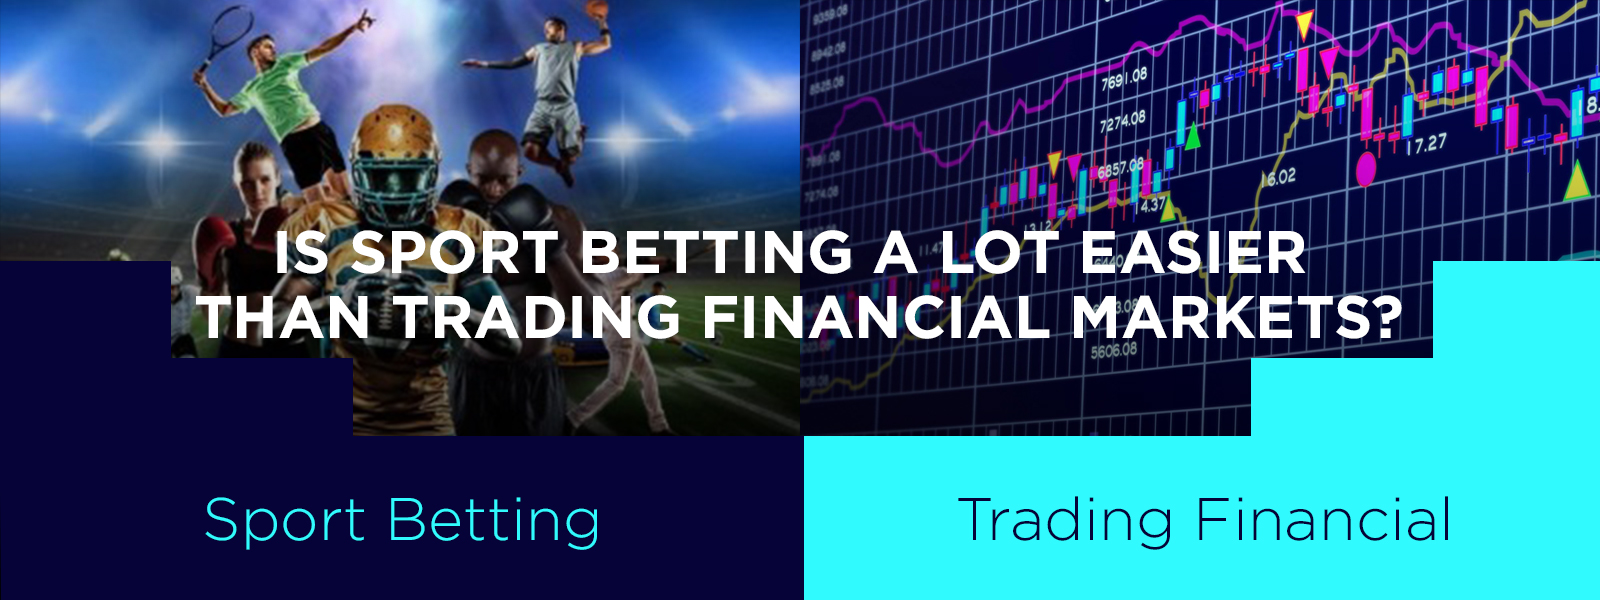 Is Sport Betting a Lot Easier than Trading Financial Markets?